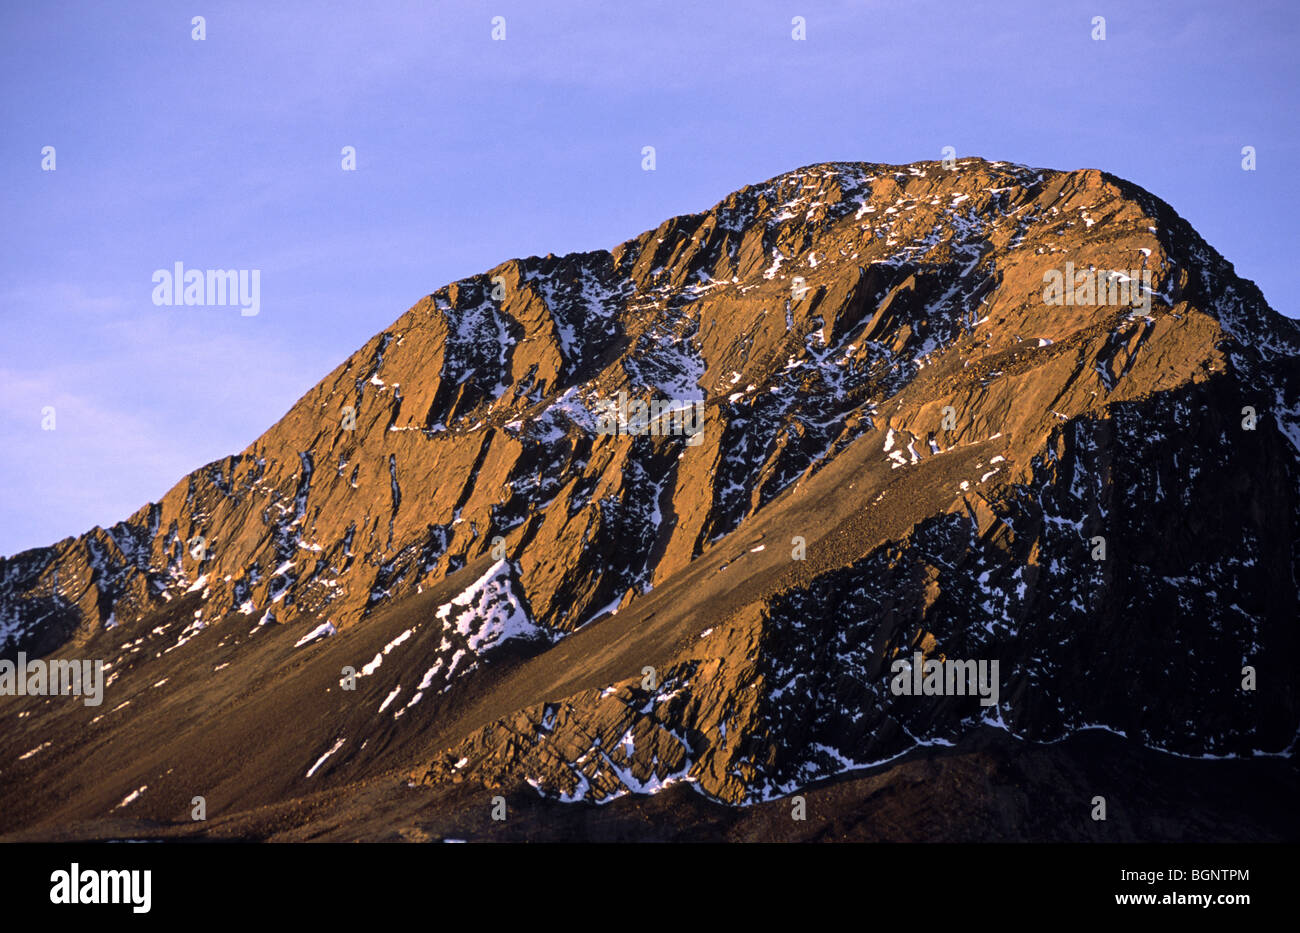 Afternoon light on mountain side. Cordillera real, Bolivia. Stock Photo